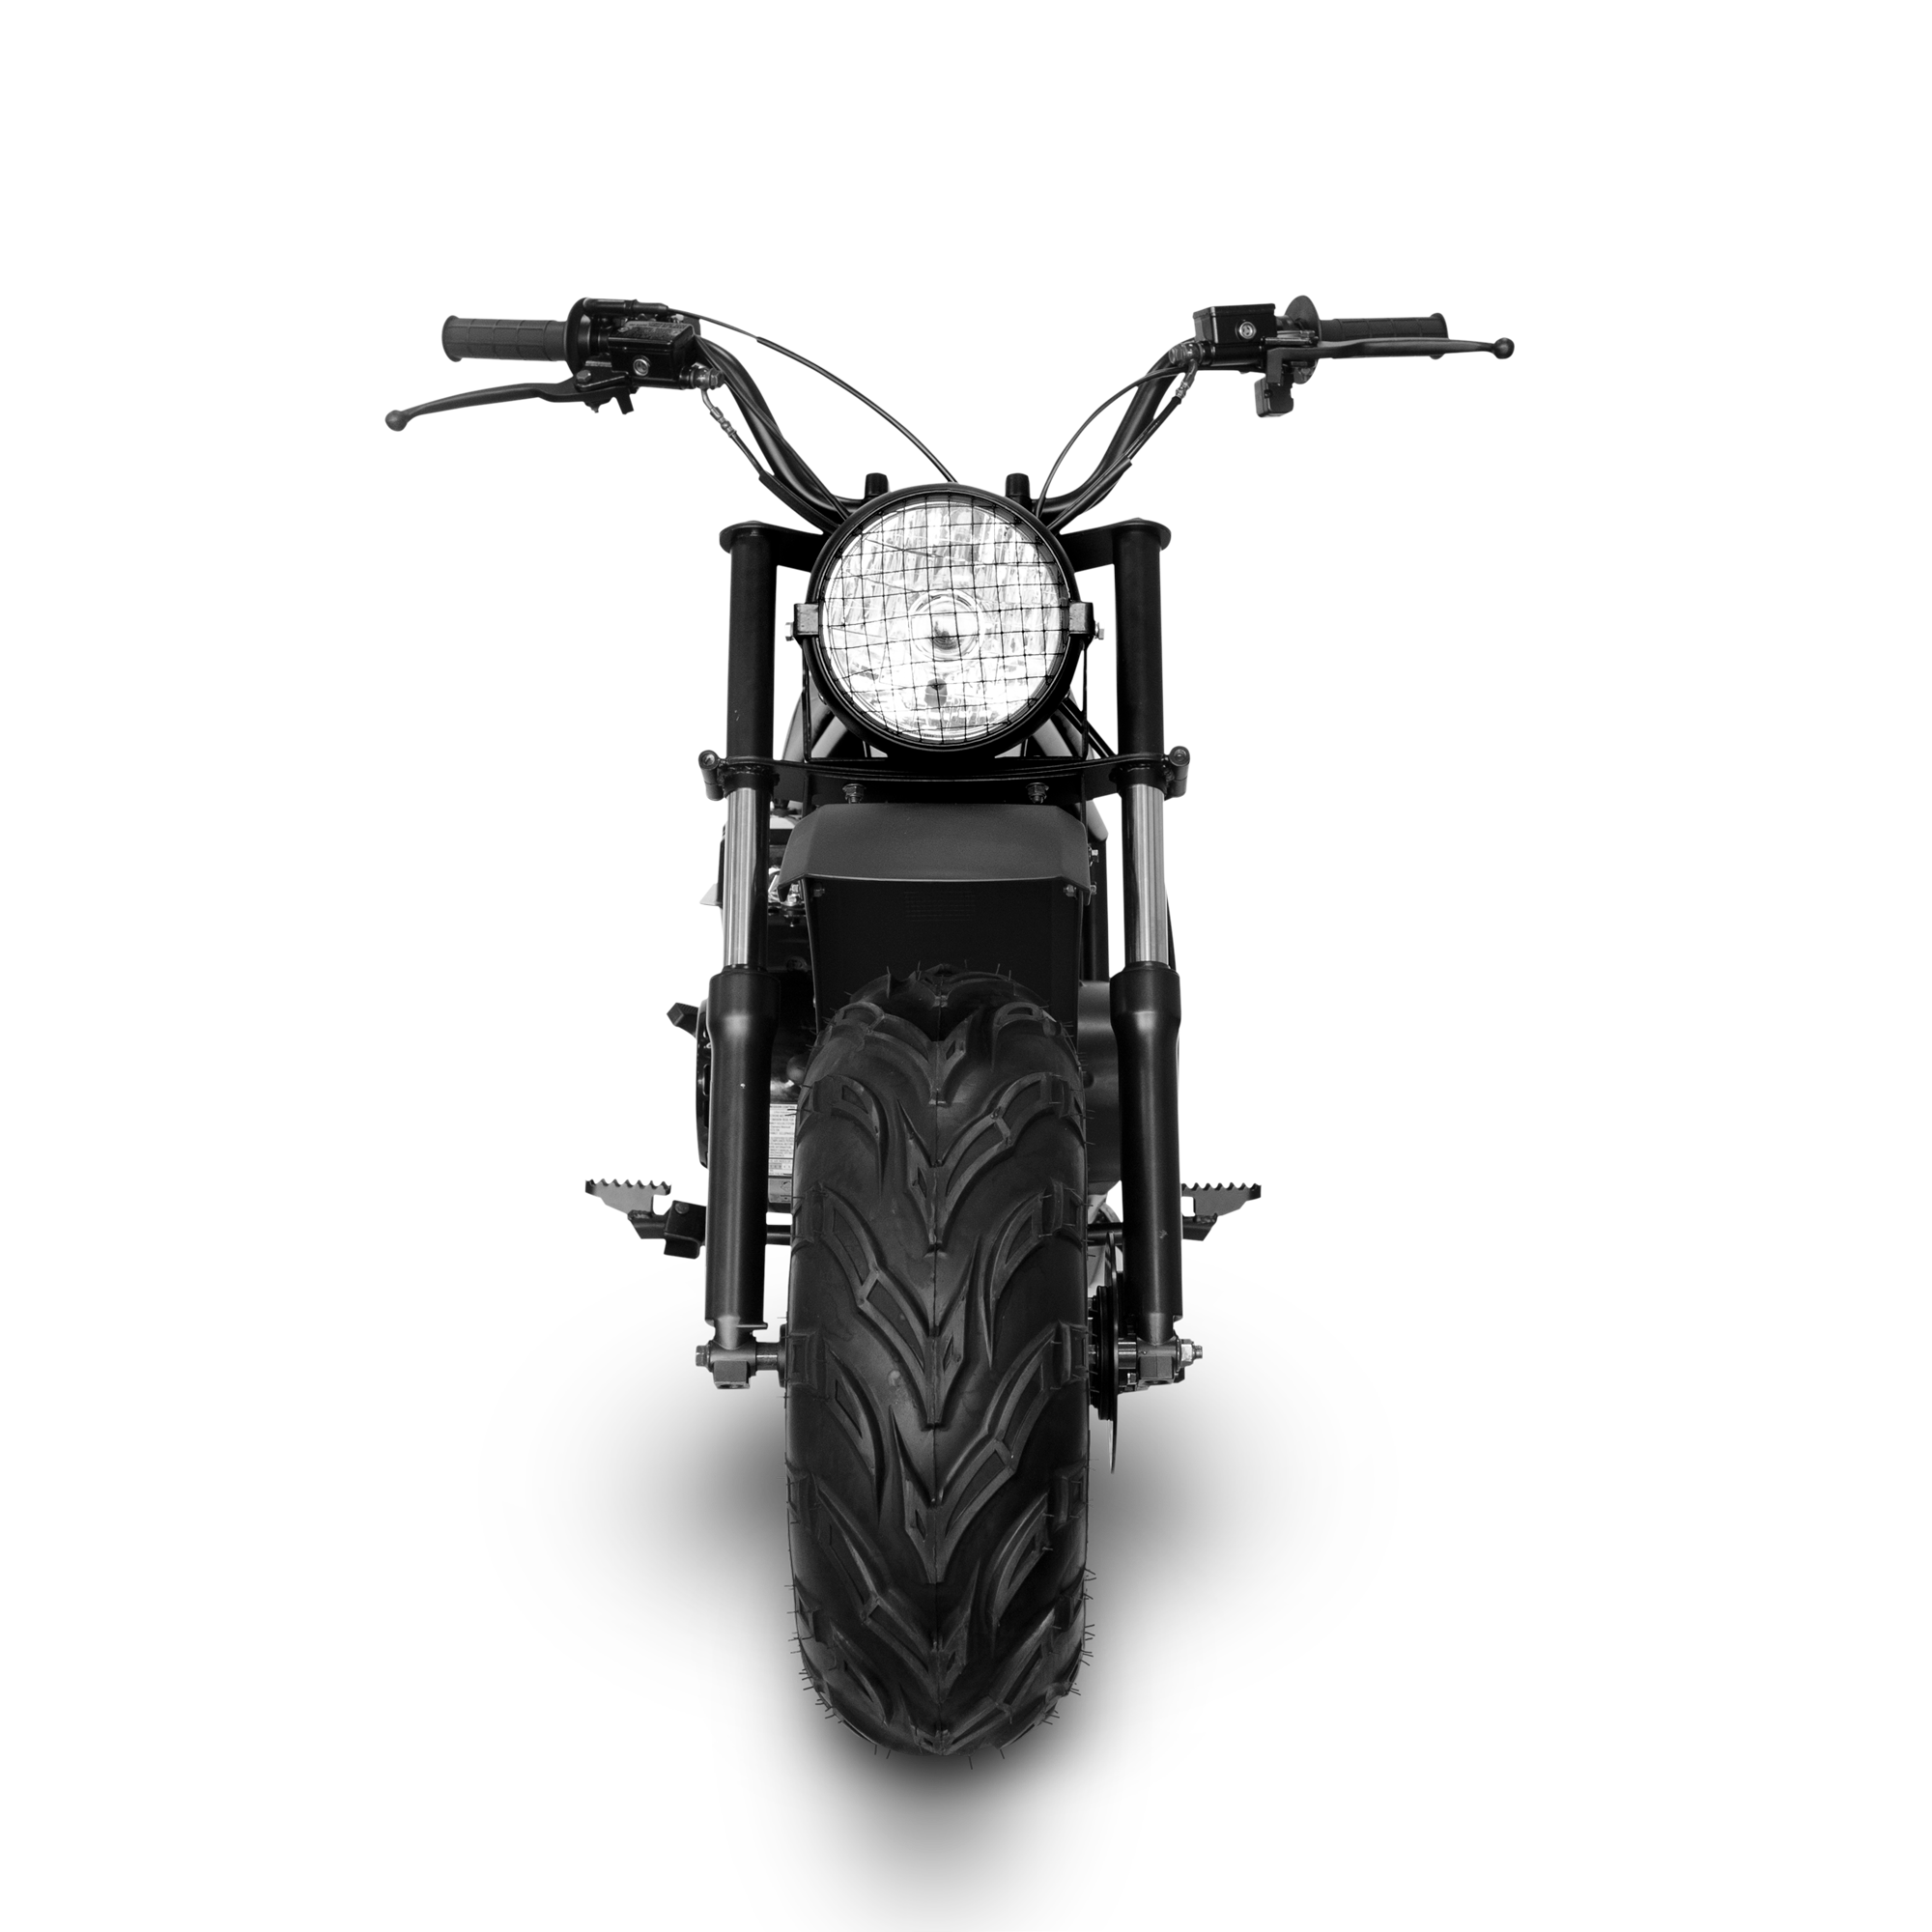 Motorcycle front png. Classic cc mini bike